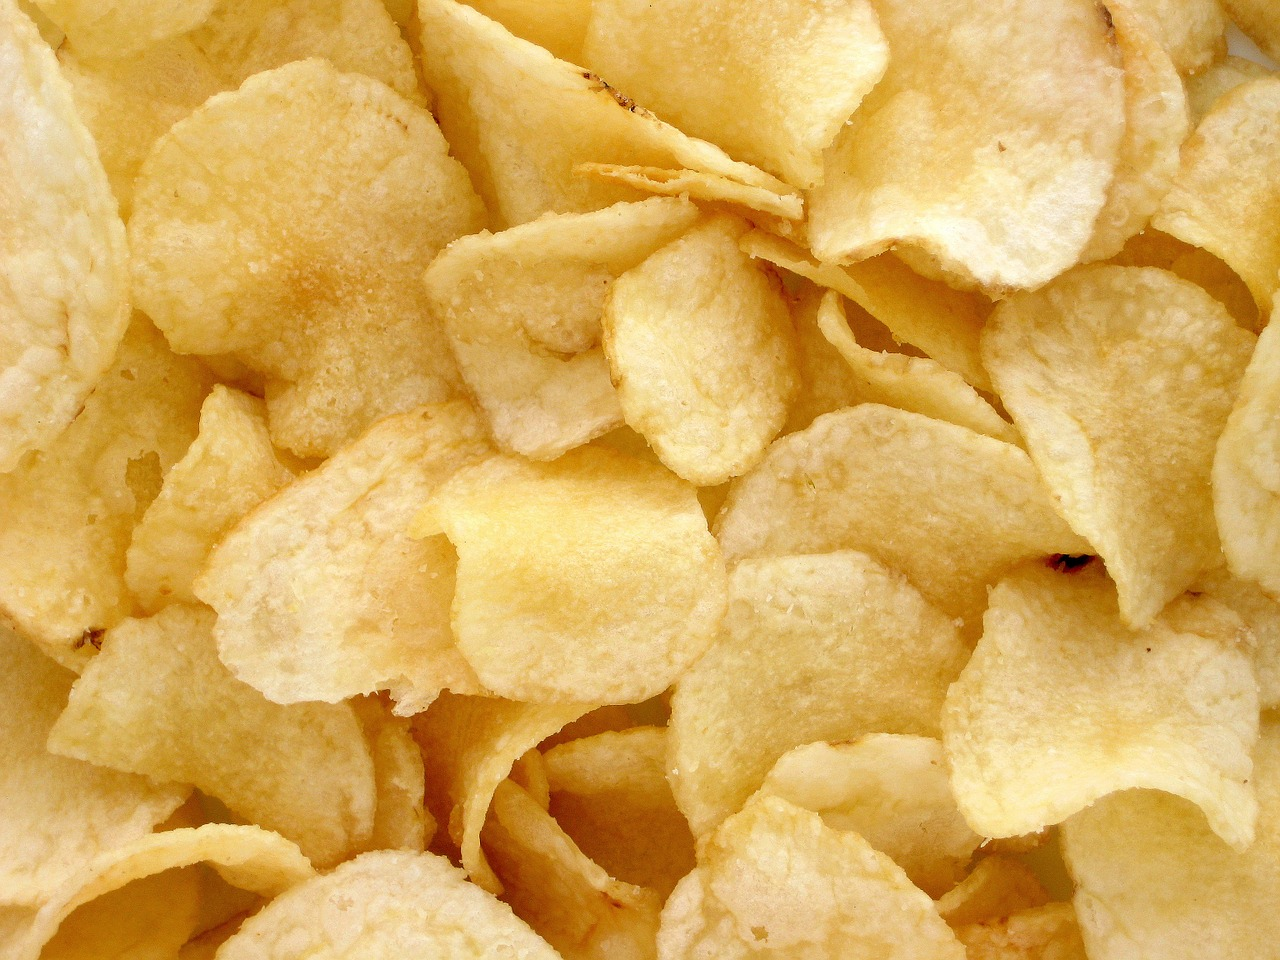 How To Start Potato Chips Making Business